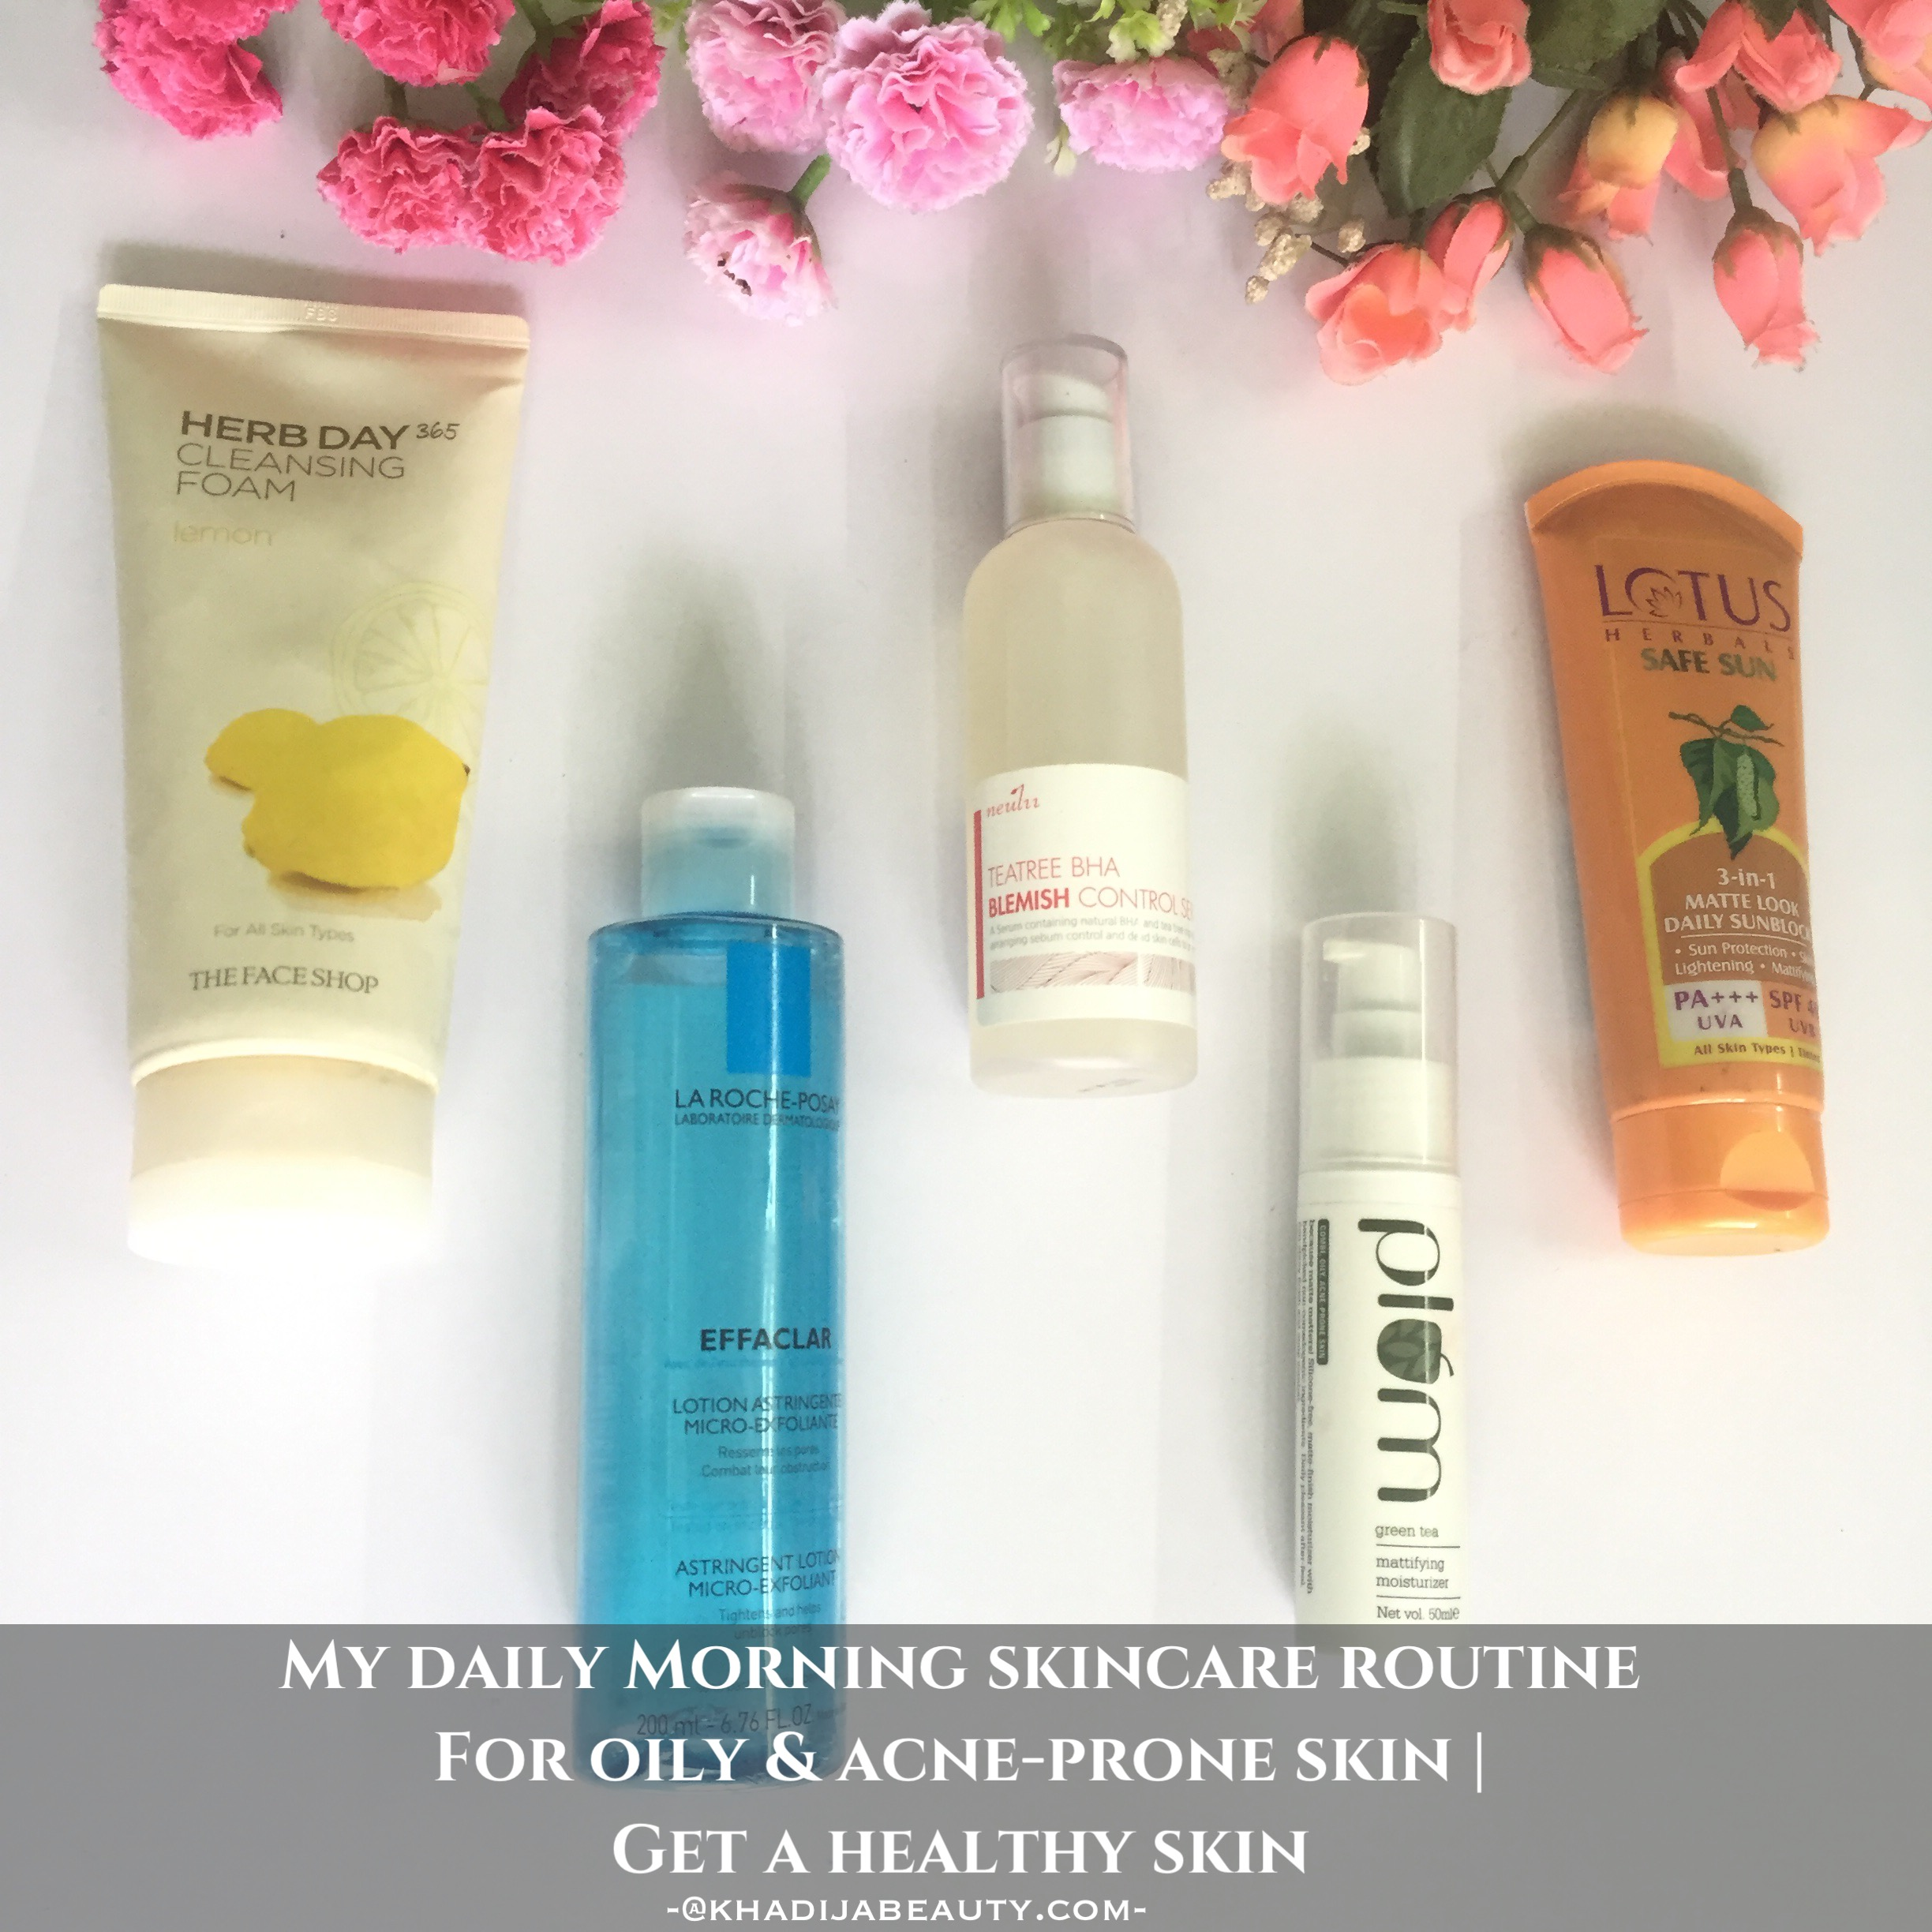 Morning skincare routine for oily skin, morning skincare routine for acne-prone skin, khadija beauty